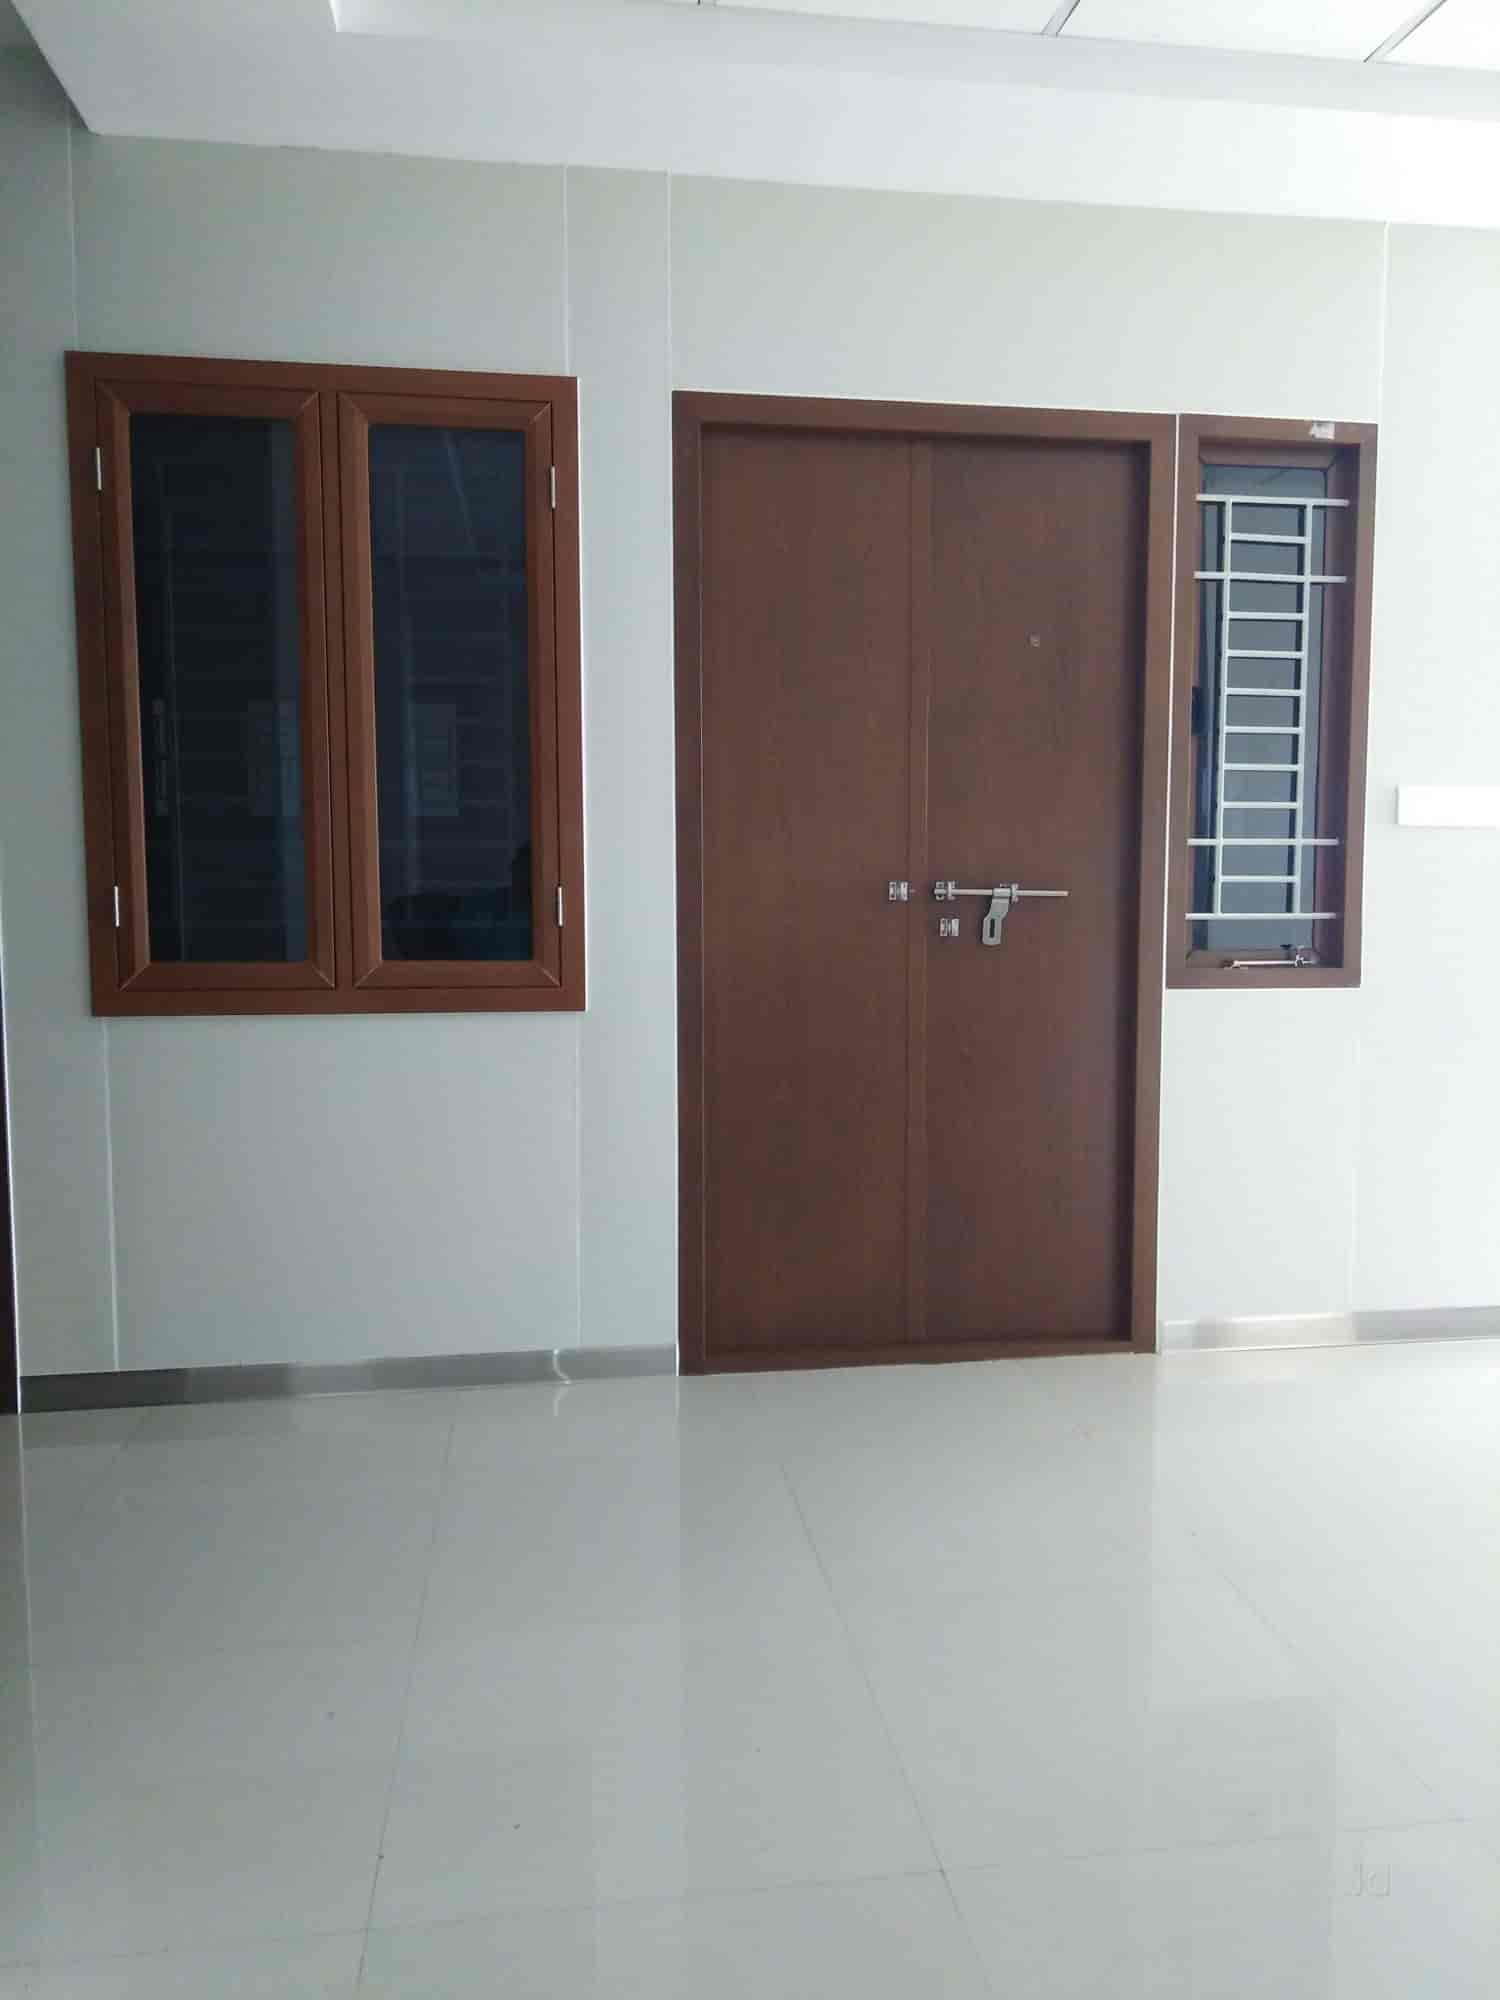 Rainbow Doors And Windows Gorantla Grill Dealers in Guntur